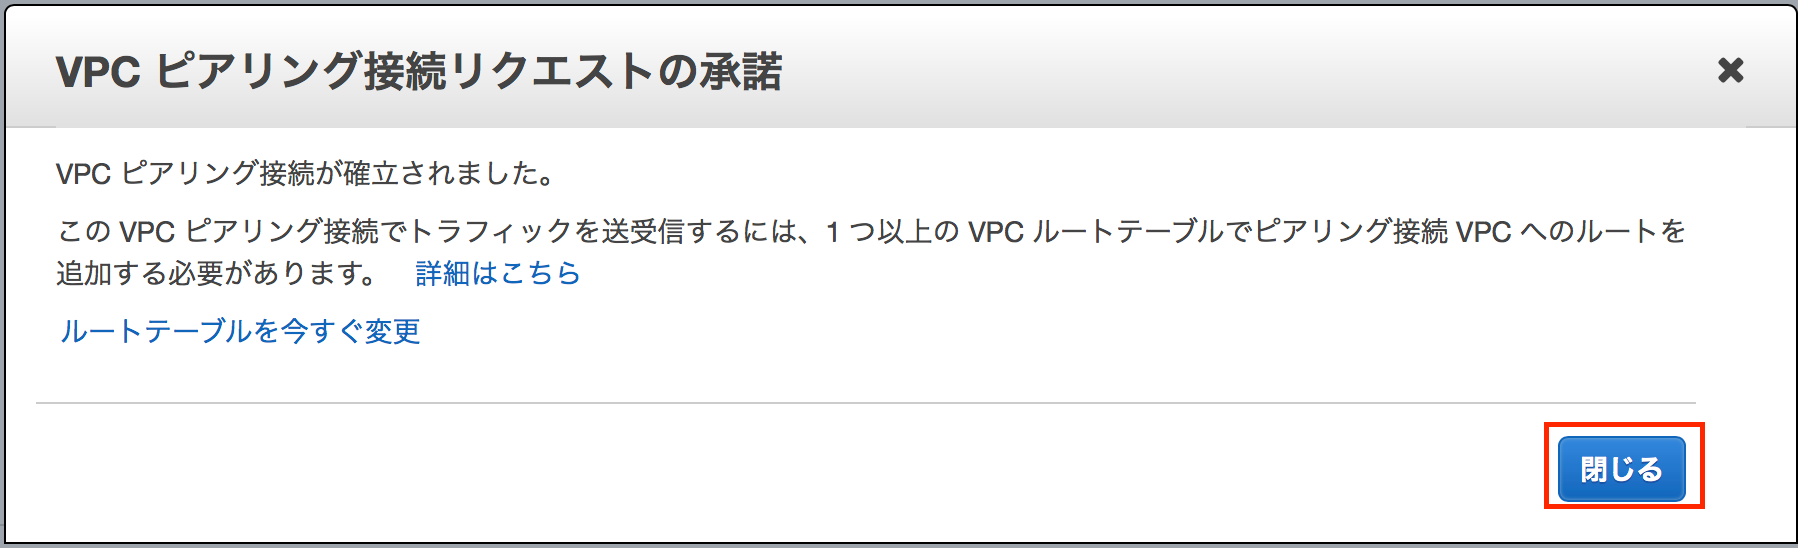 VPCPeering_setting_7.png